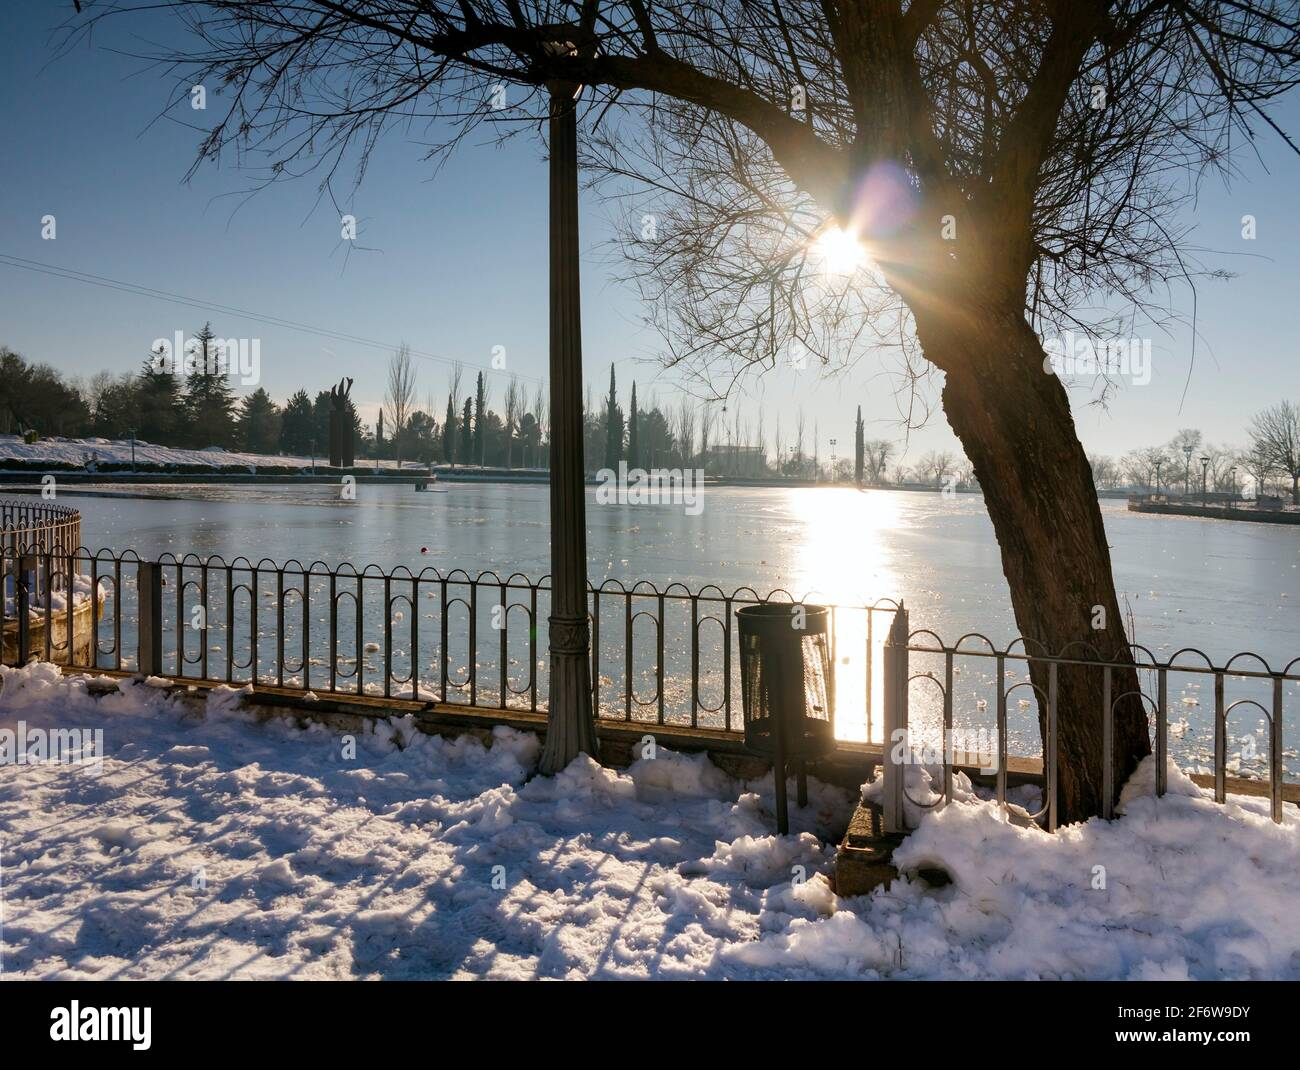 Snow and ice on the pool of Juan Carlo I park in Pinto. Madrid. Spain. Europe. Stock Photo